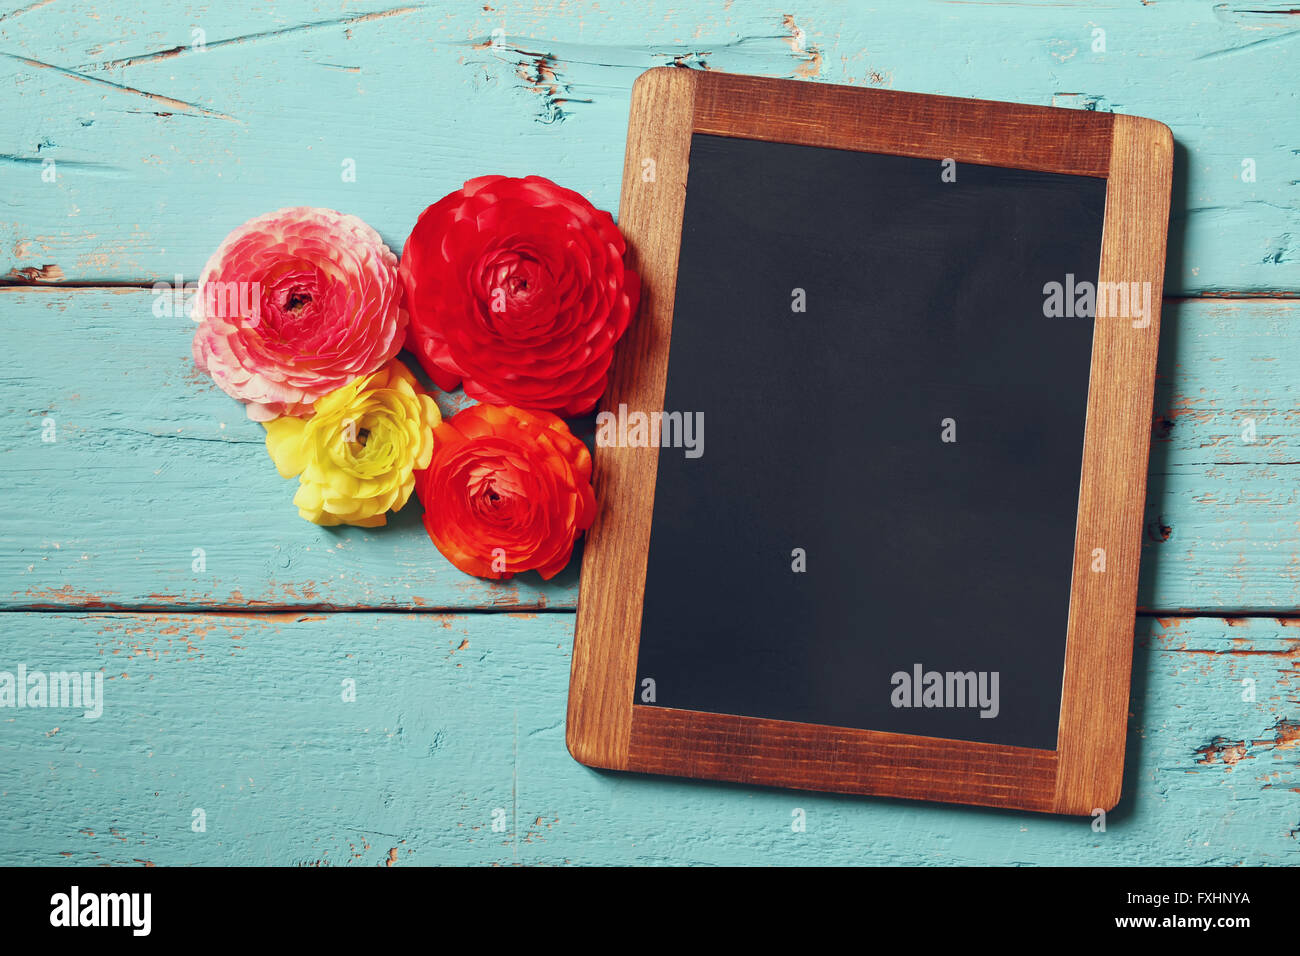 flowers next to empty blackboard, on wooden table. copy space - Stock Image